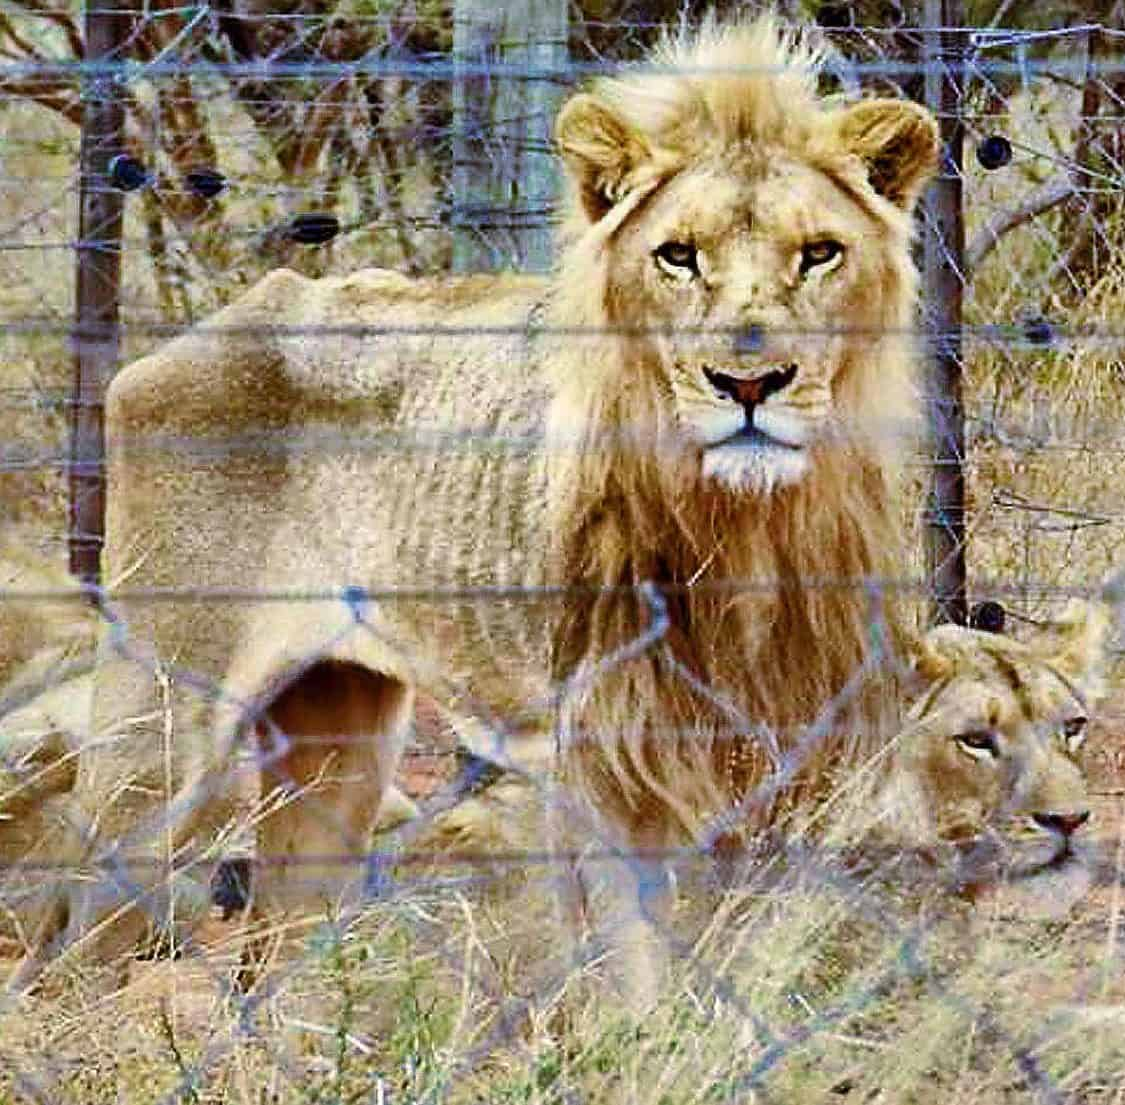 Lions bred for canned hunts are starving to death